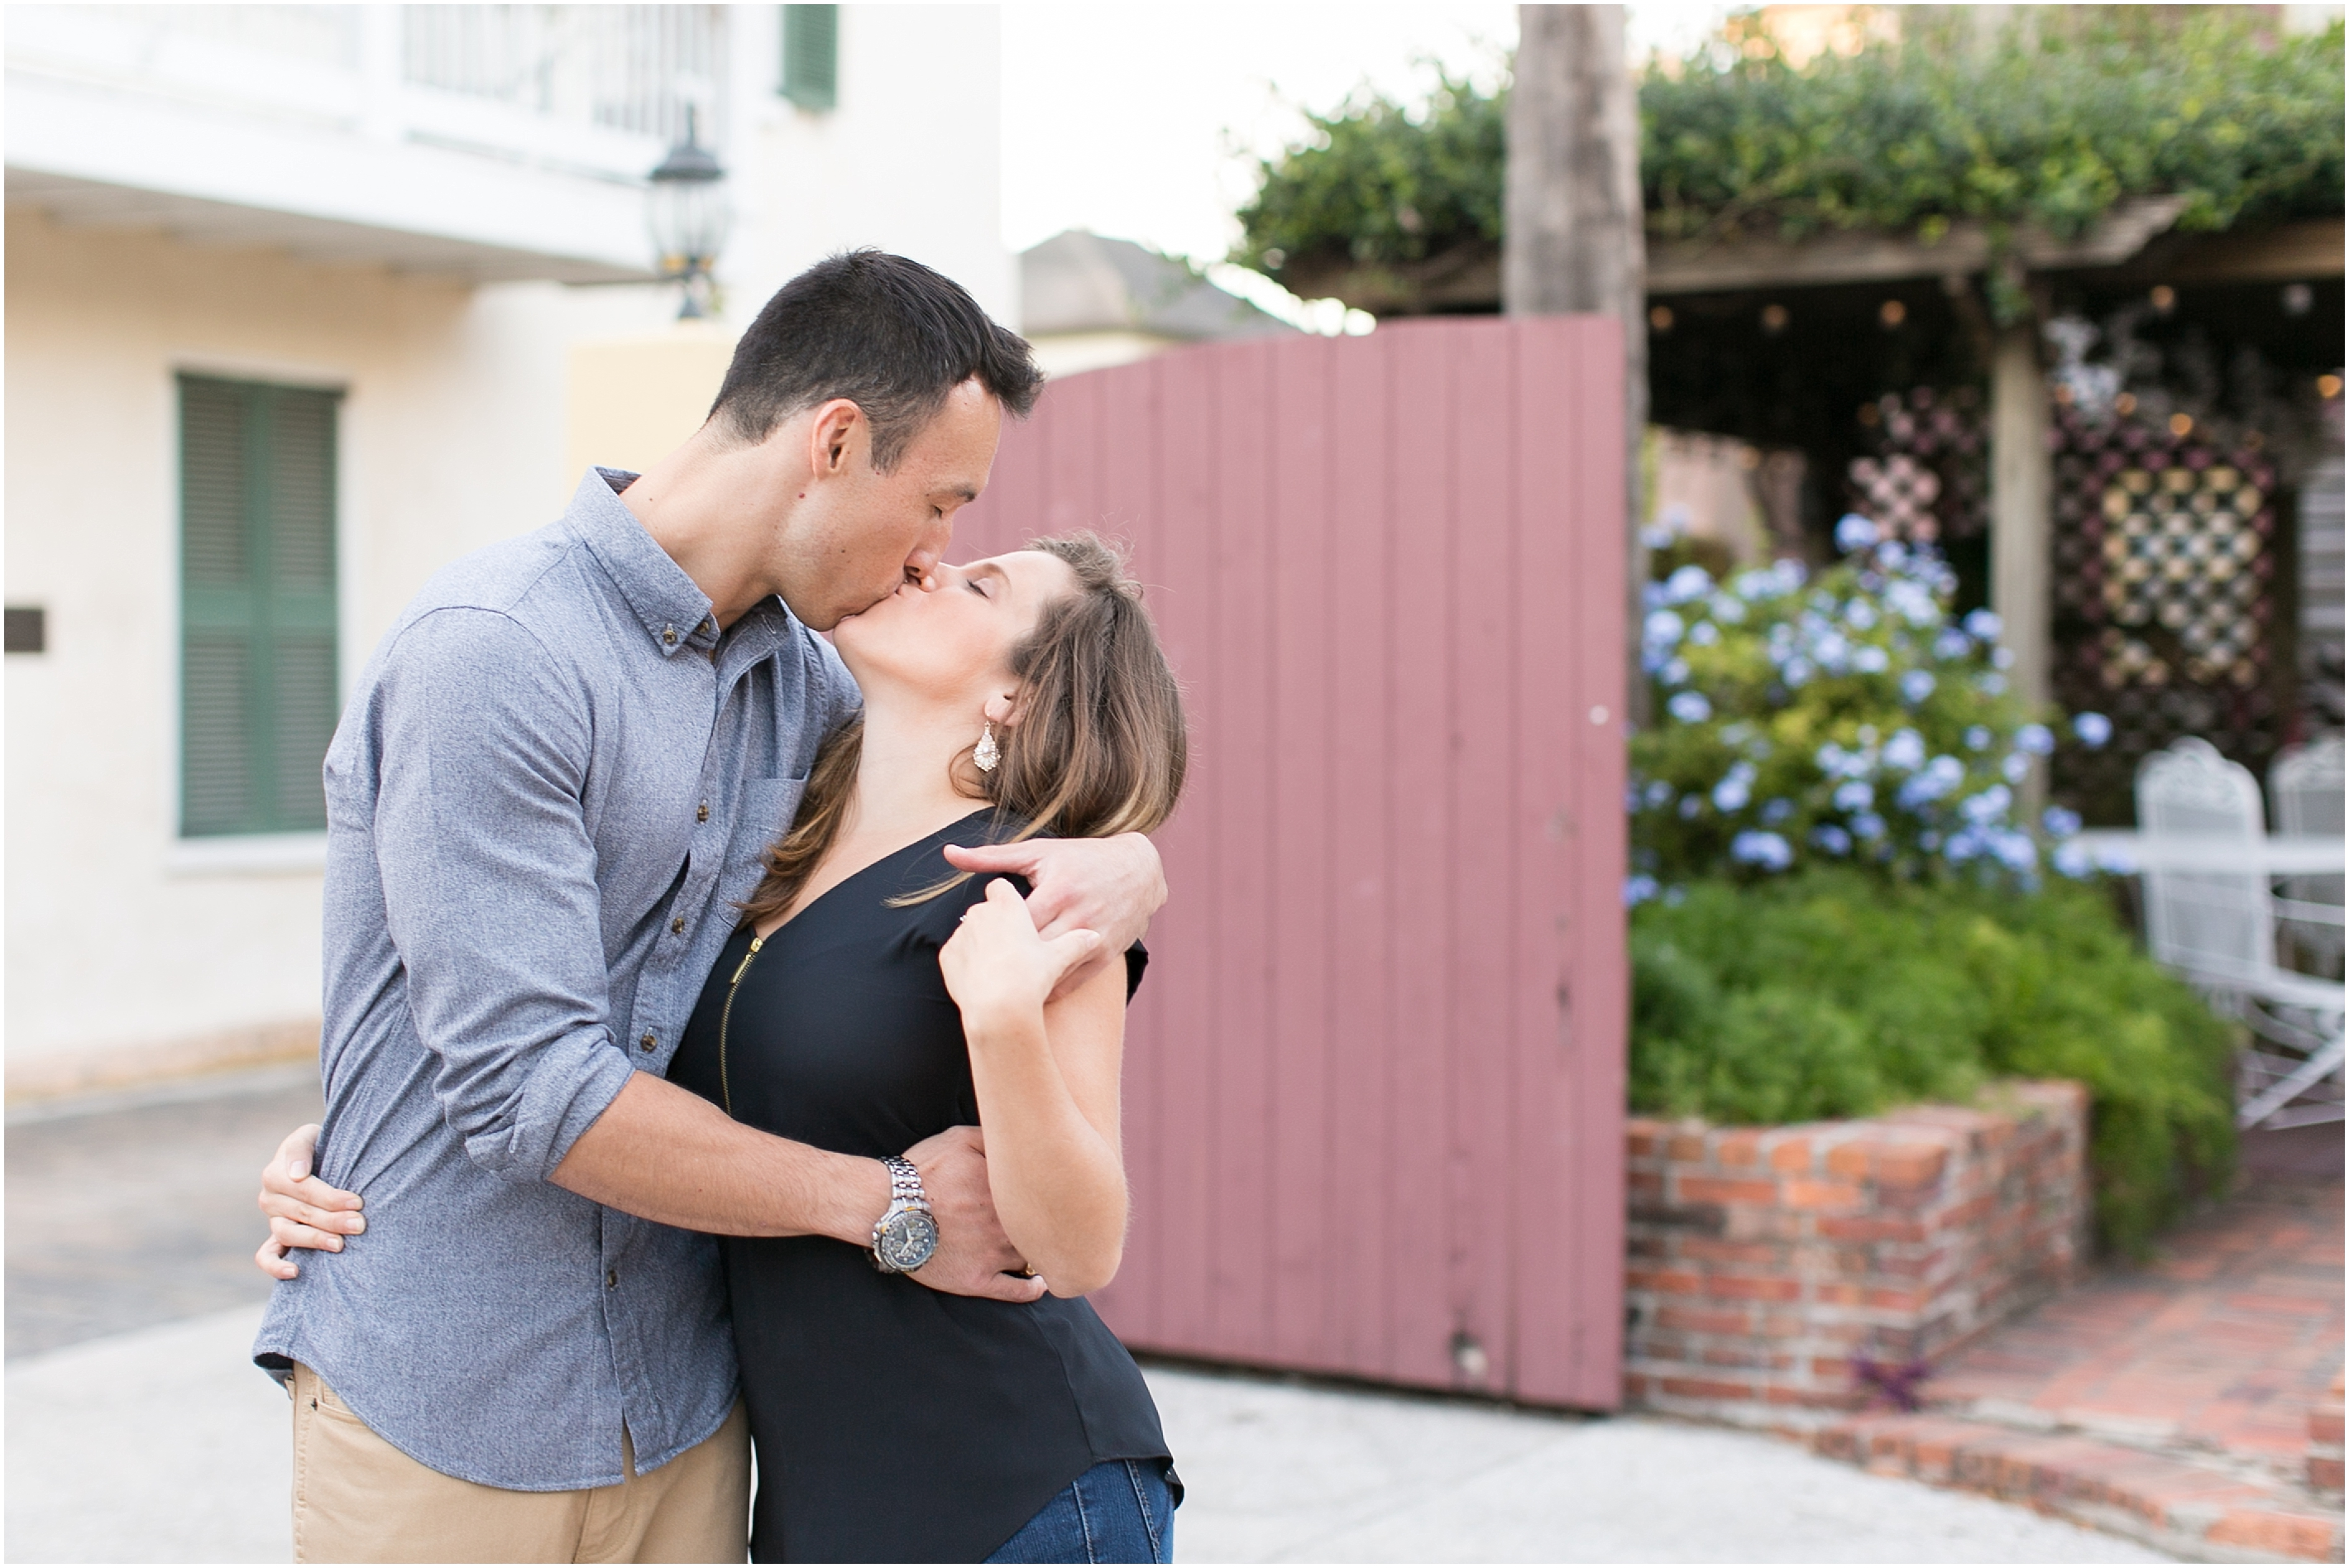 va_jessica_ryan_photography_st_augustine_florida_destination_engagement_photography_0142